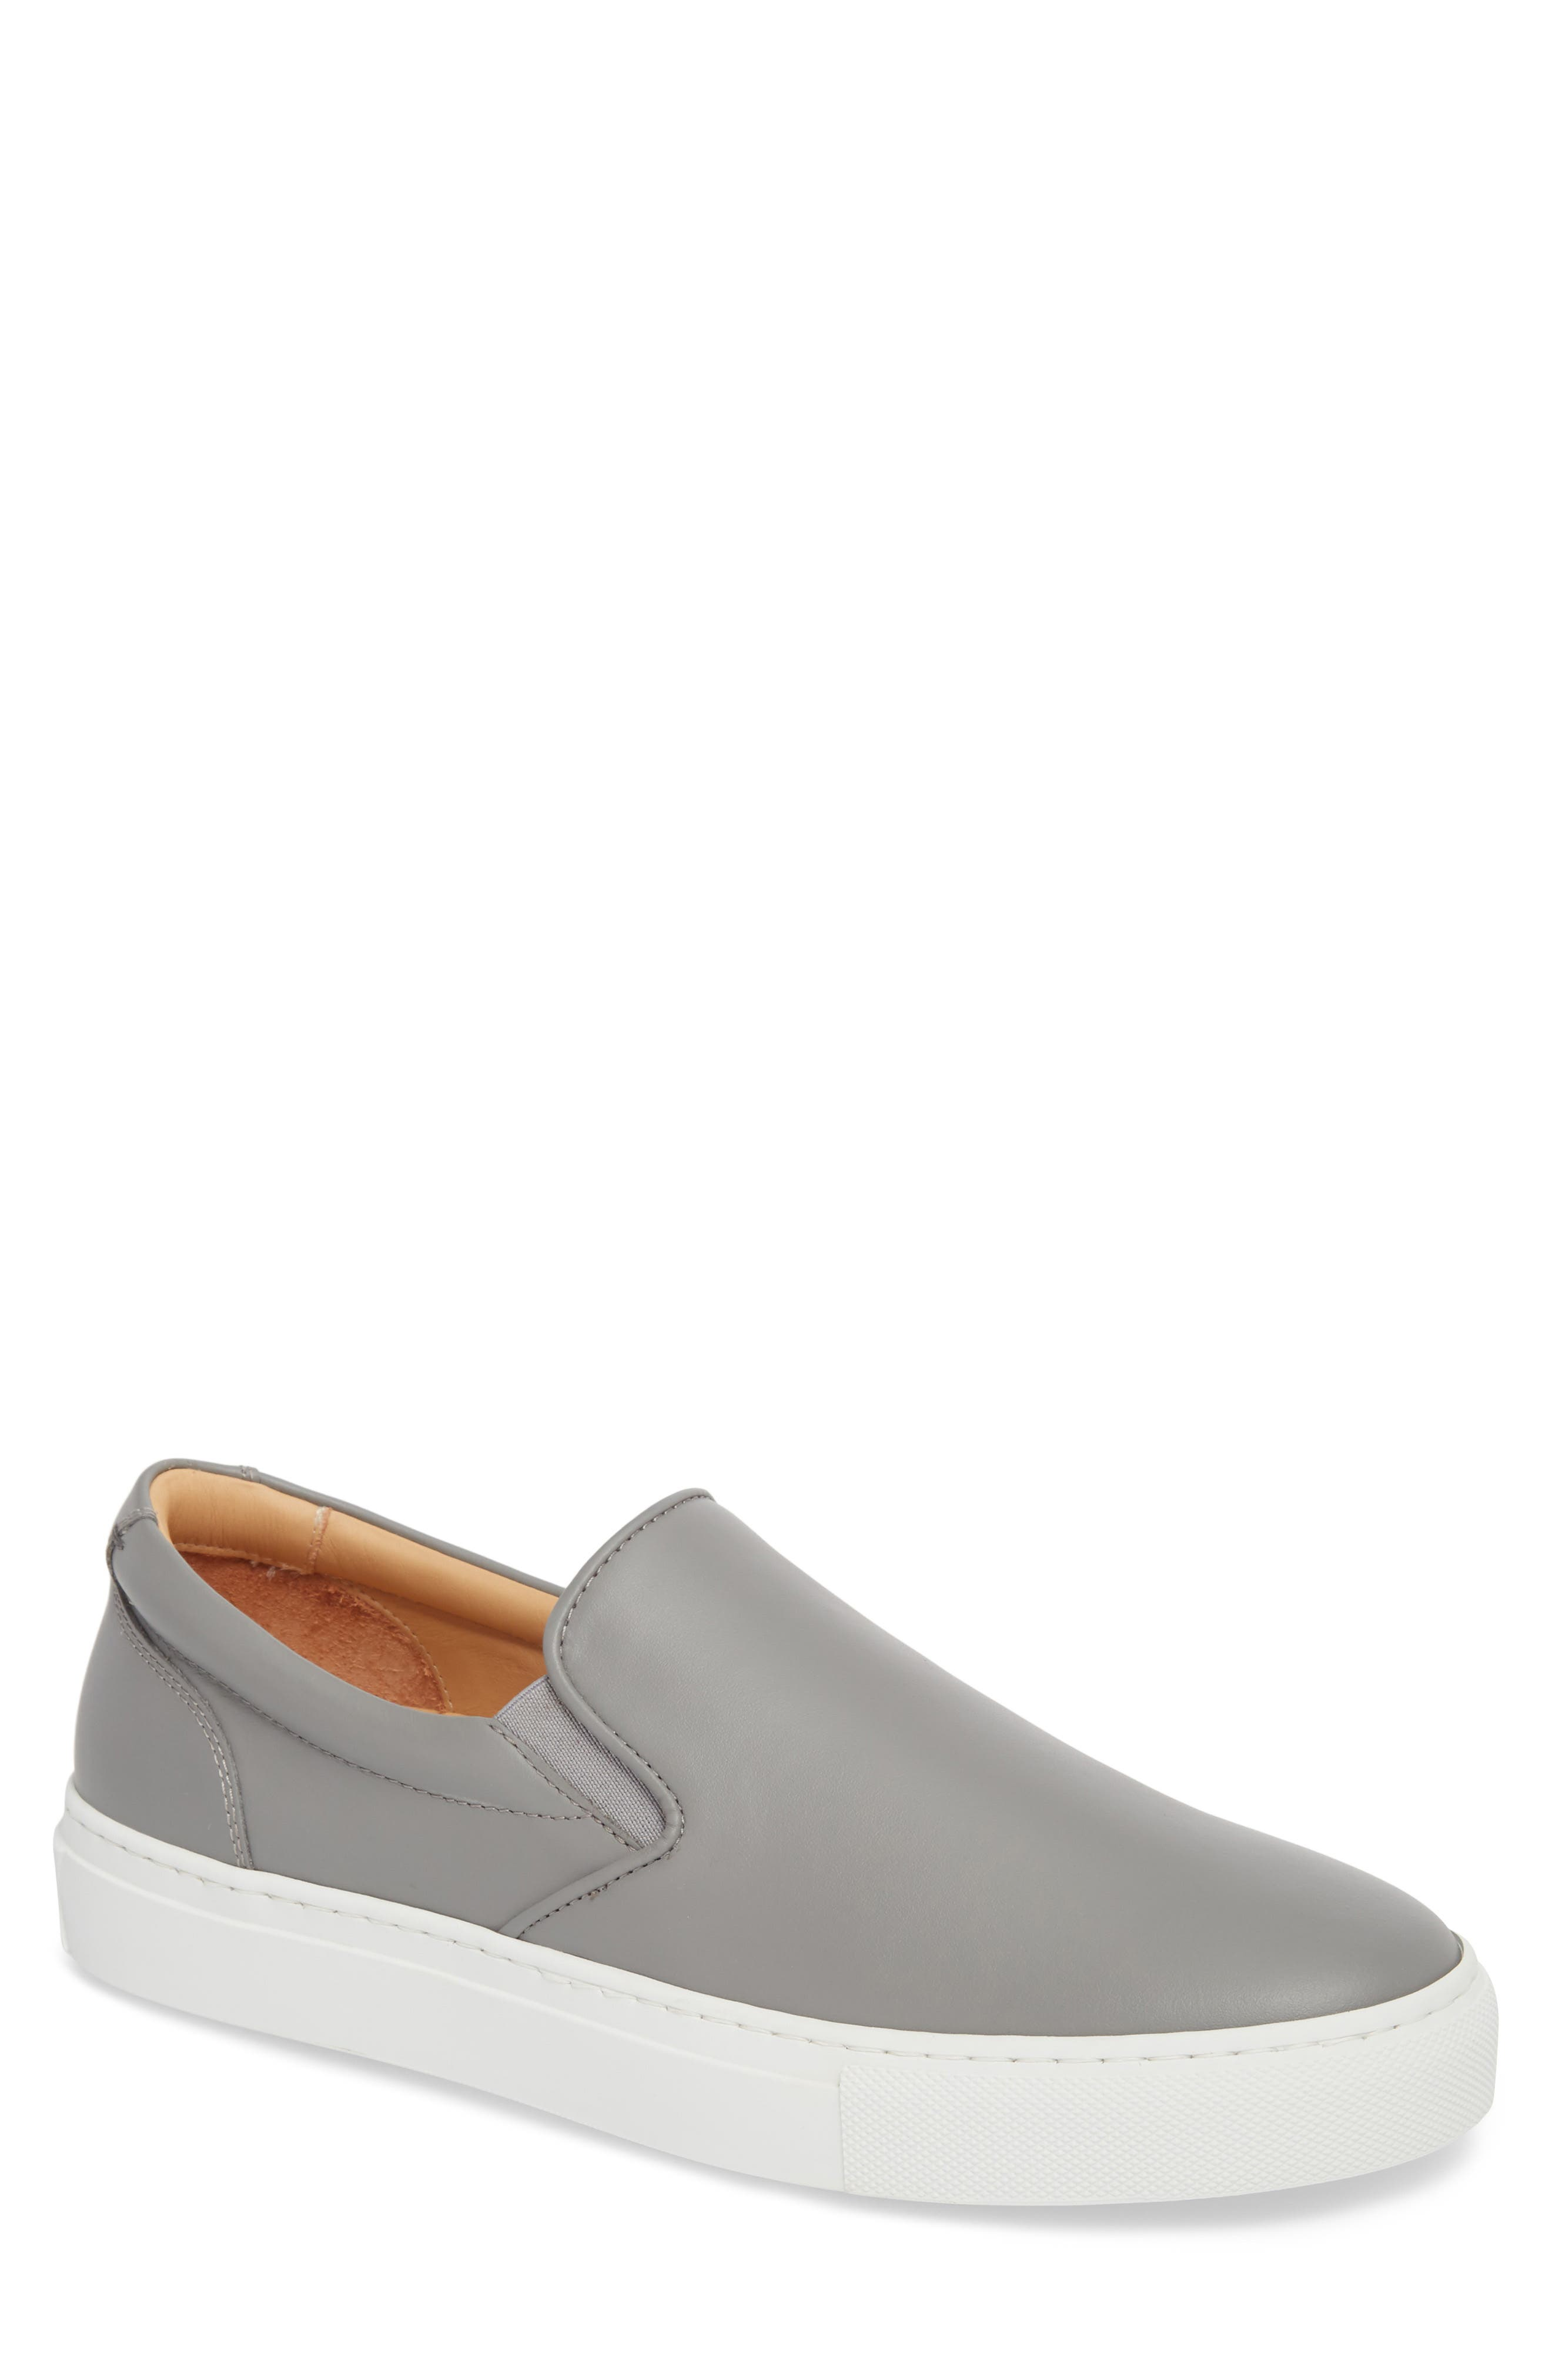 Wooster Slip-On Sneaker,                             Main thumbnail 1, color,                             Grey Leather